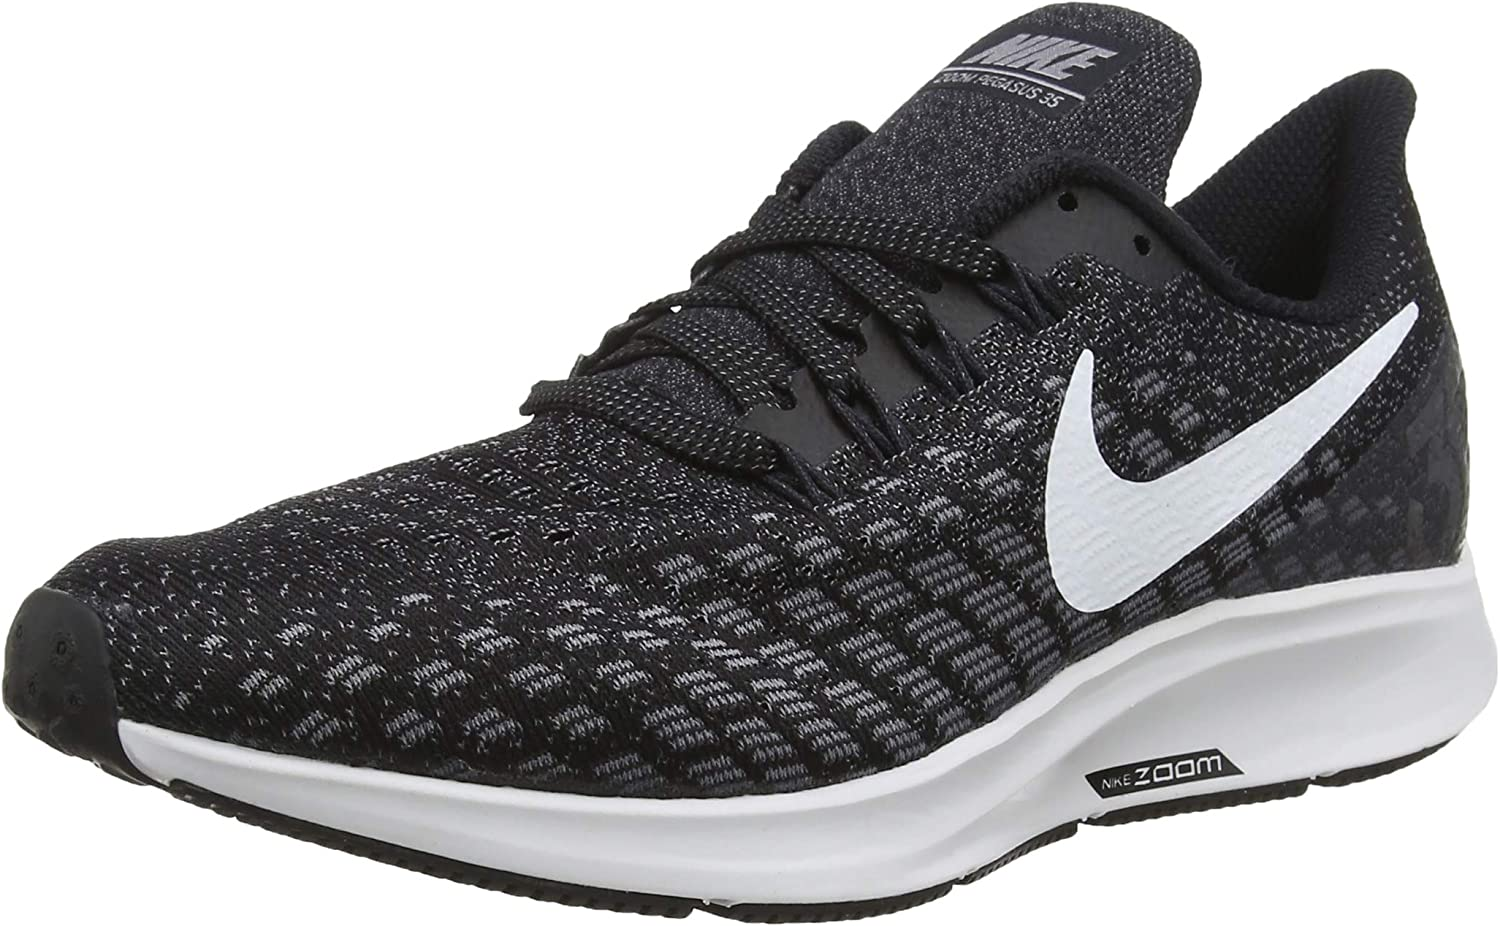 Nike Men's lowest price Herren Laufschuh Zoom We OFFer at cheap prices 35 Pegasus Shoes Turbo Training